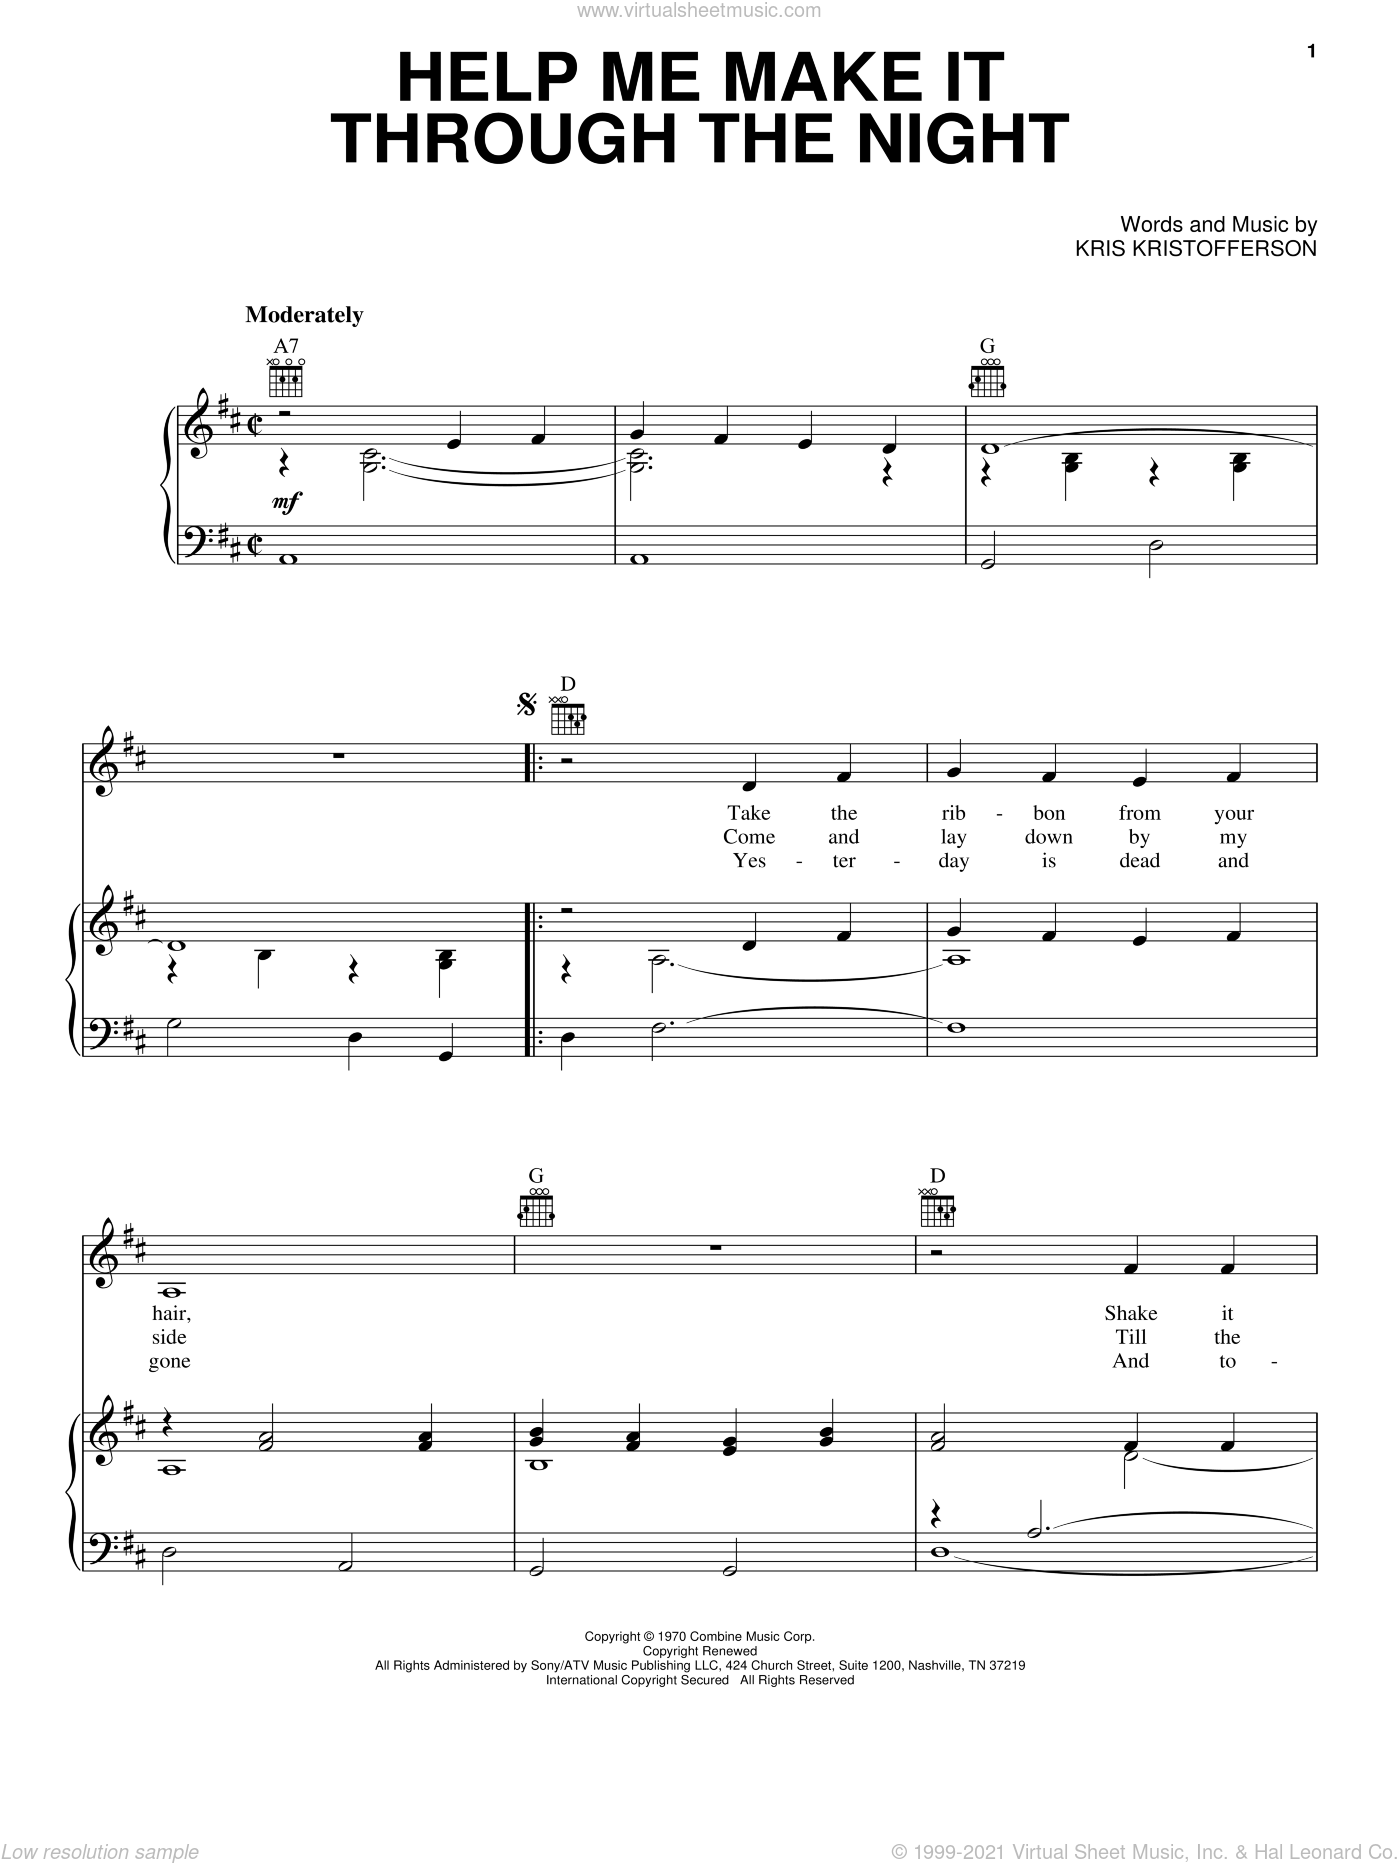 Help Me Make It Through The Night sheet music for voice, piano or guitar by Kris Kristofferson, Elvis Presley, Sammi Smith and Willie Nelson, intermediate voice, piano or guitar. Score Image Preview.